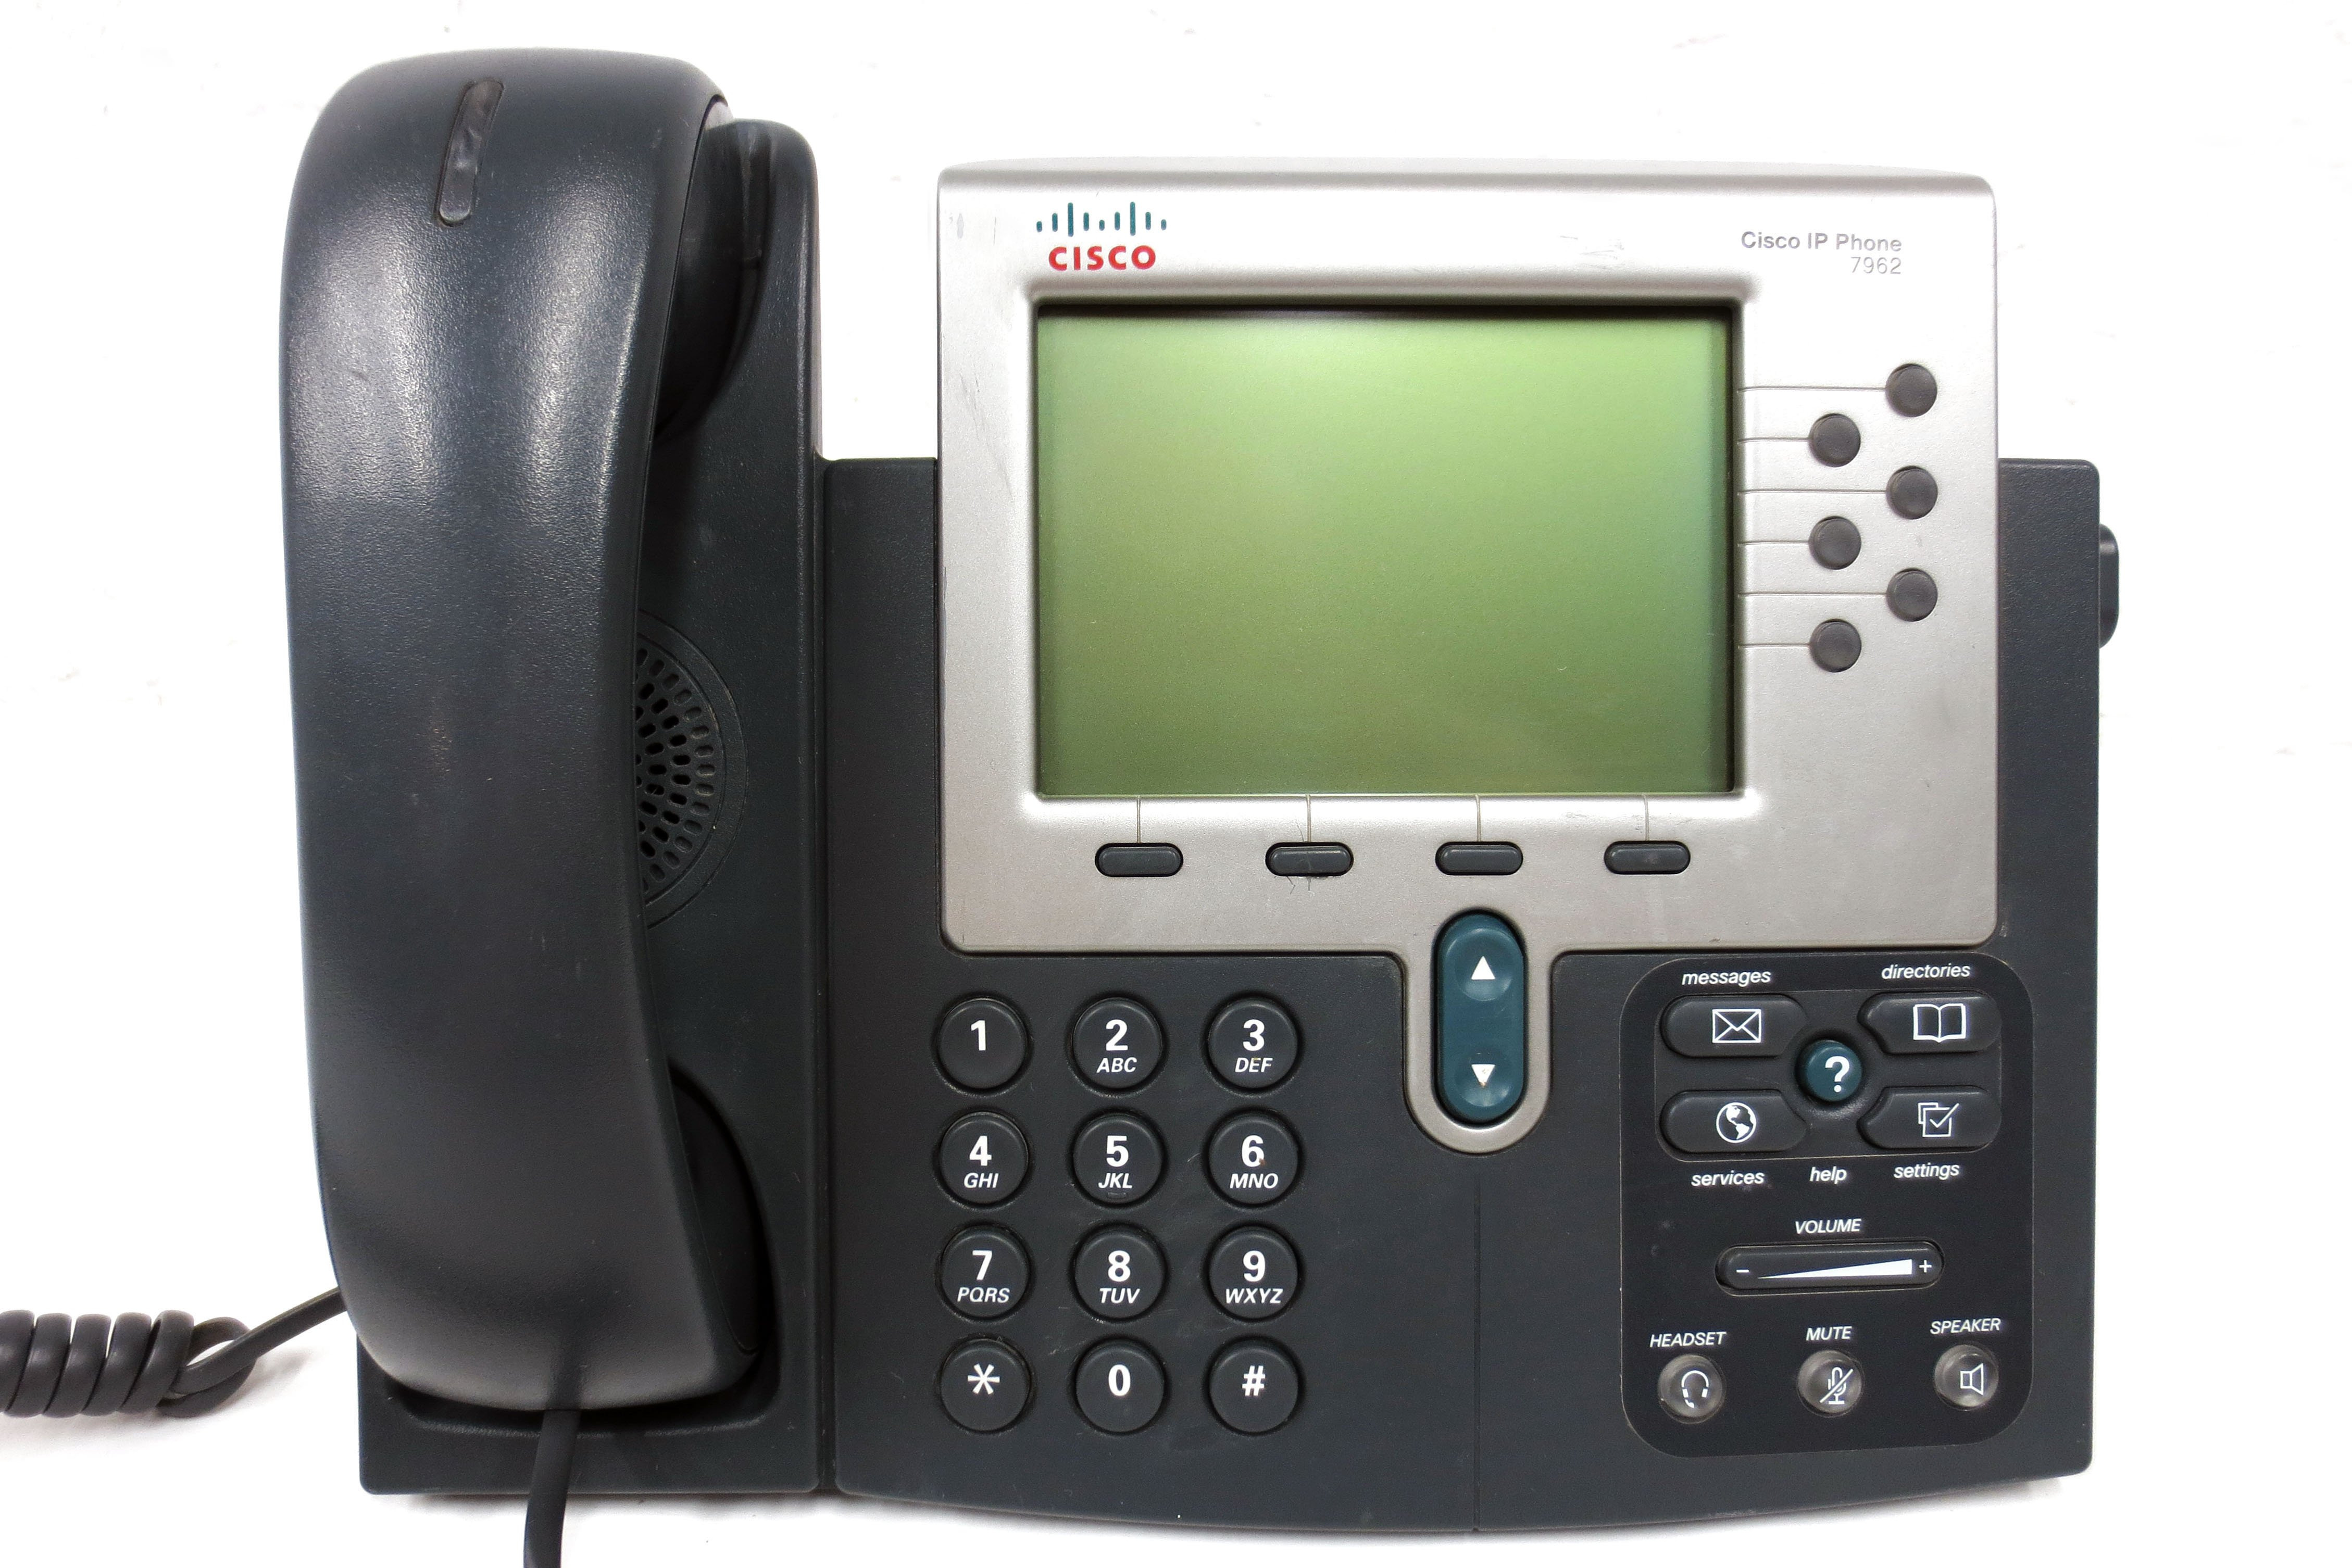 Cisco Unified IP Phone 7962G VoIP PoE Business Phone with Handset